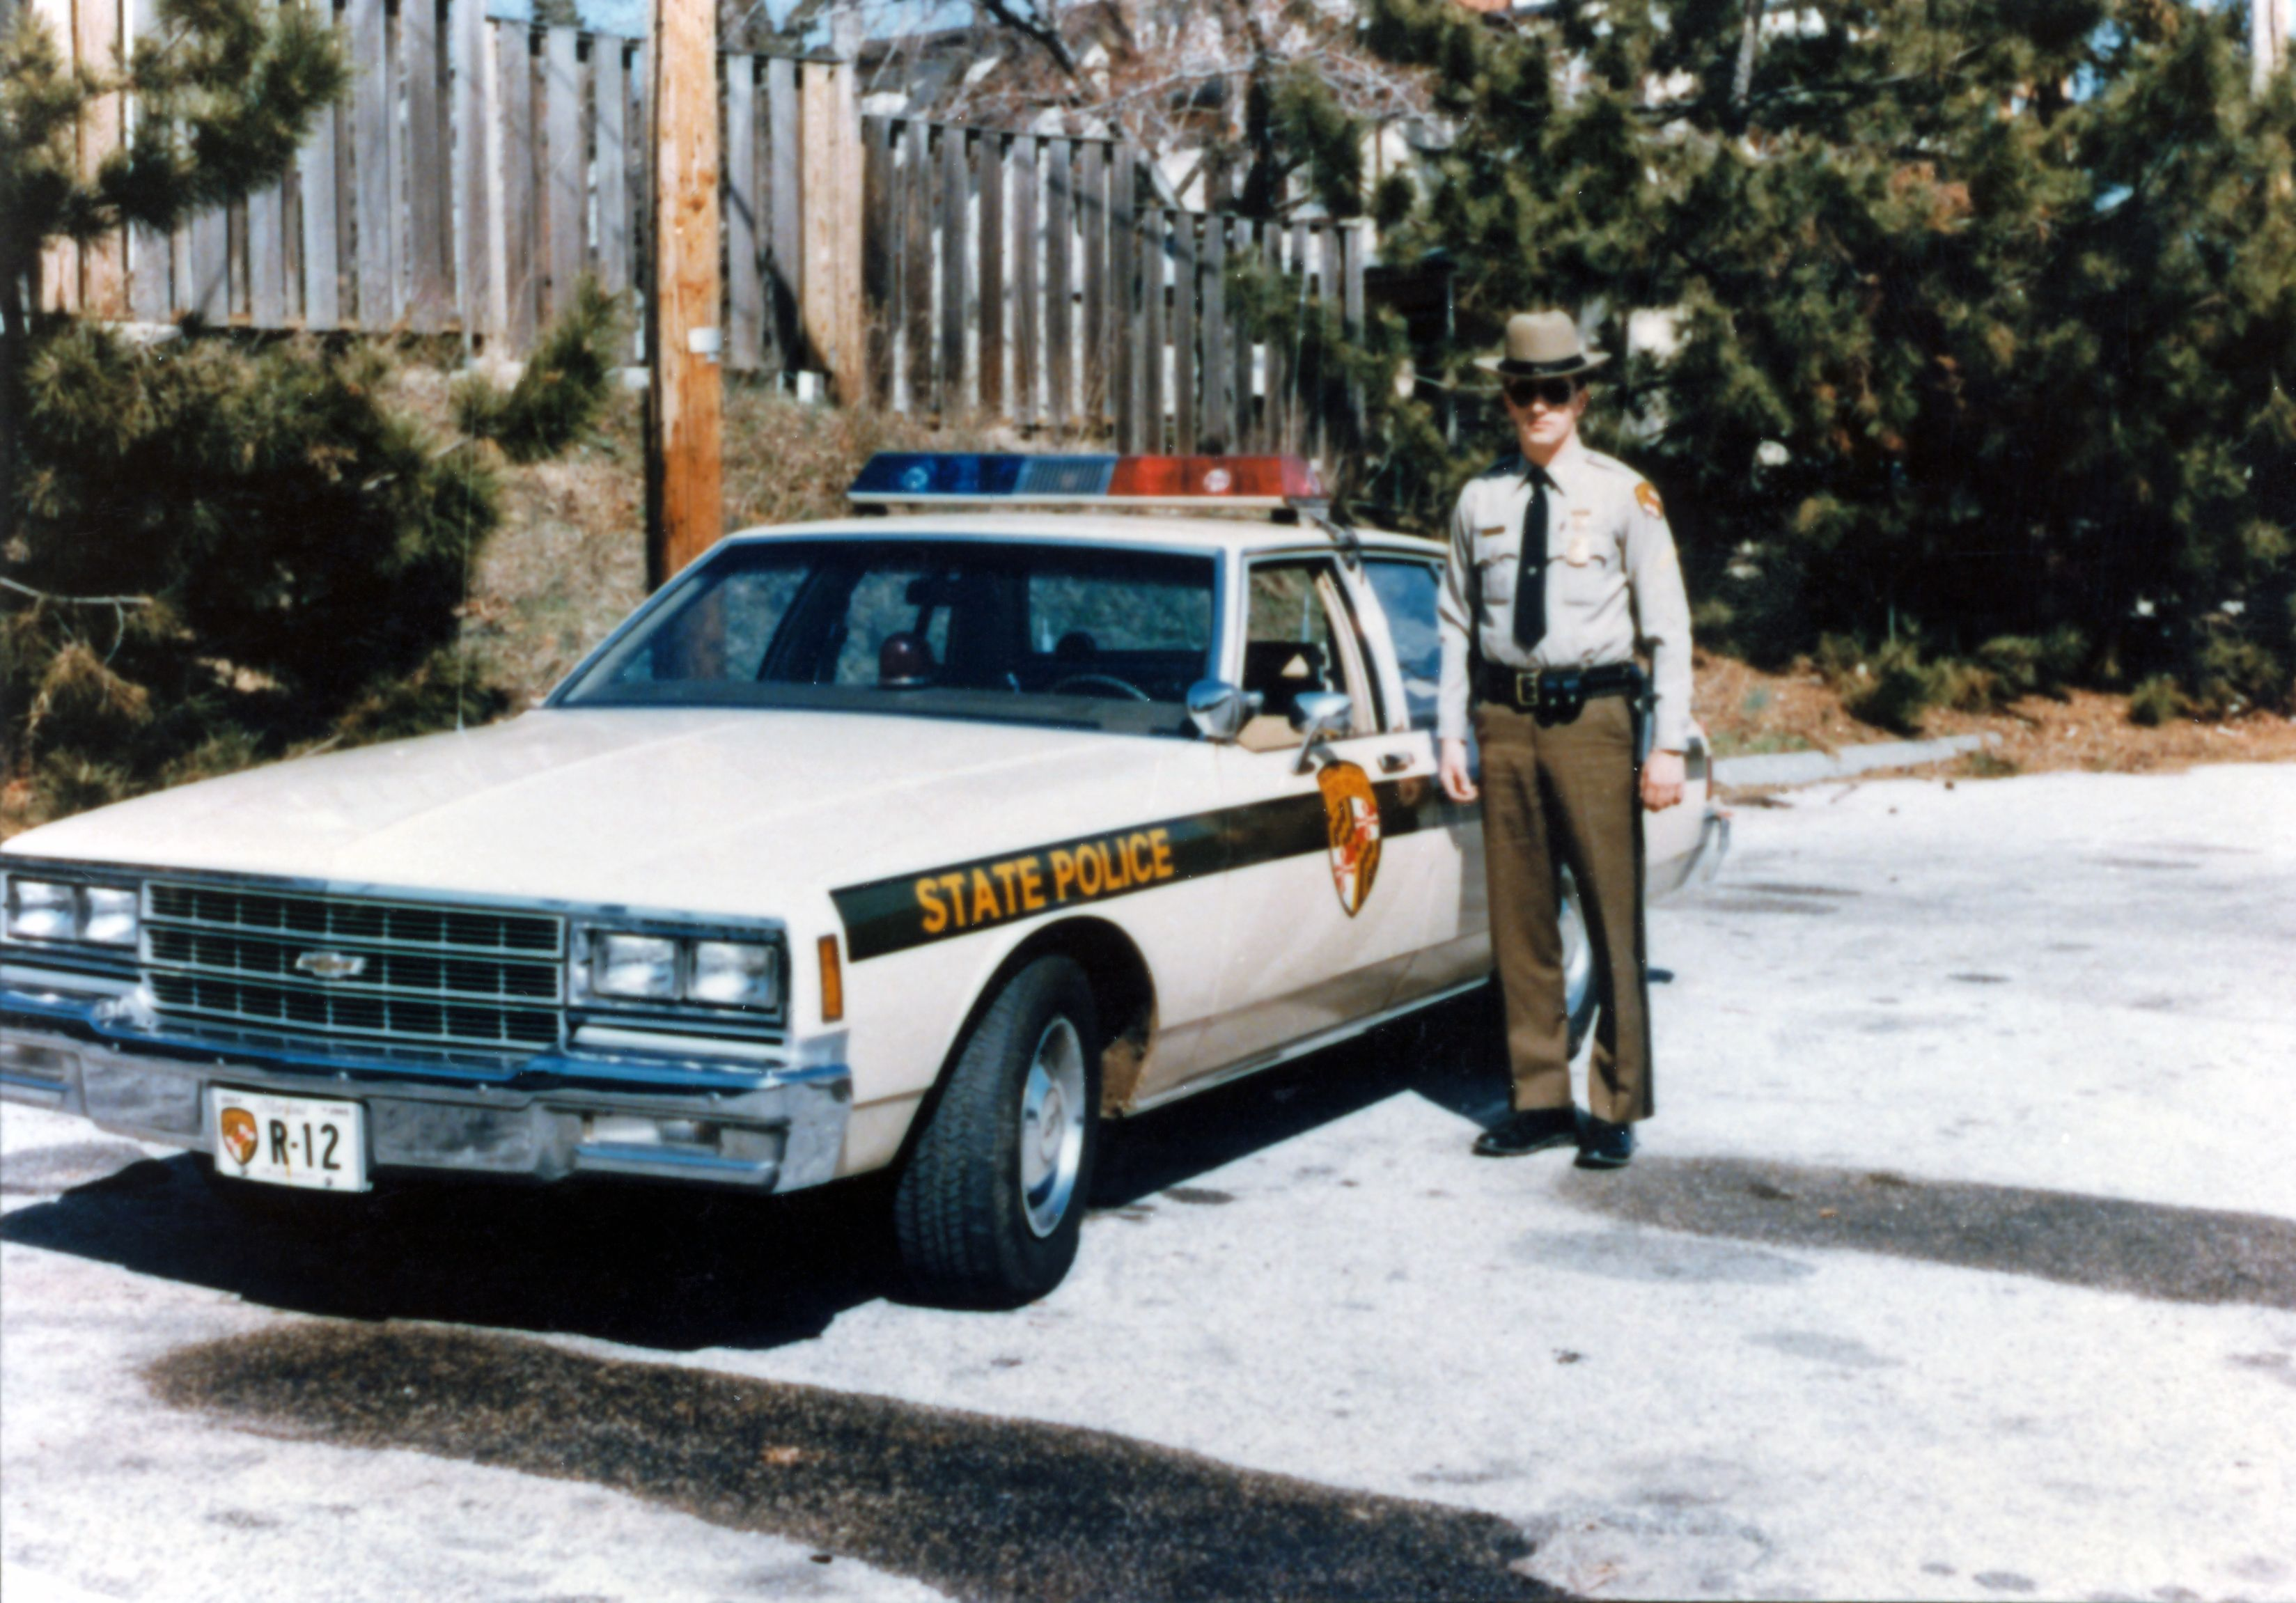 Maryland State Trooper And Car State Police Police Cars Old Police Cars